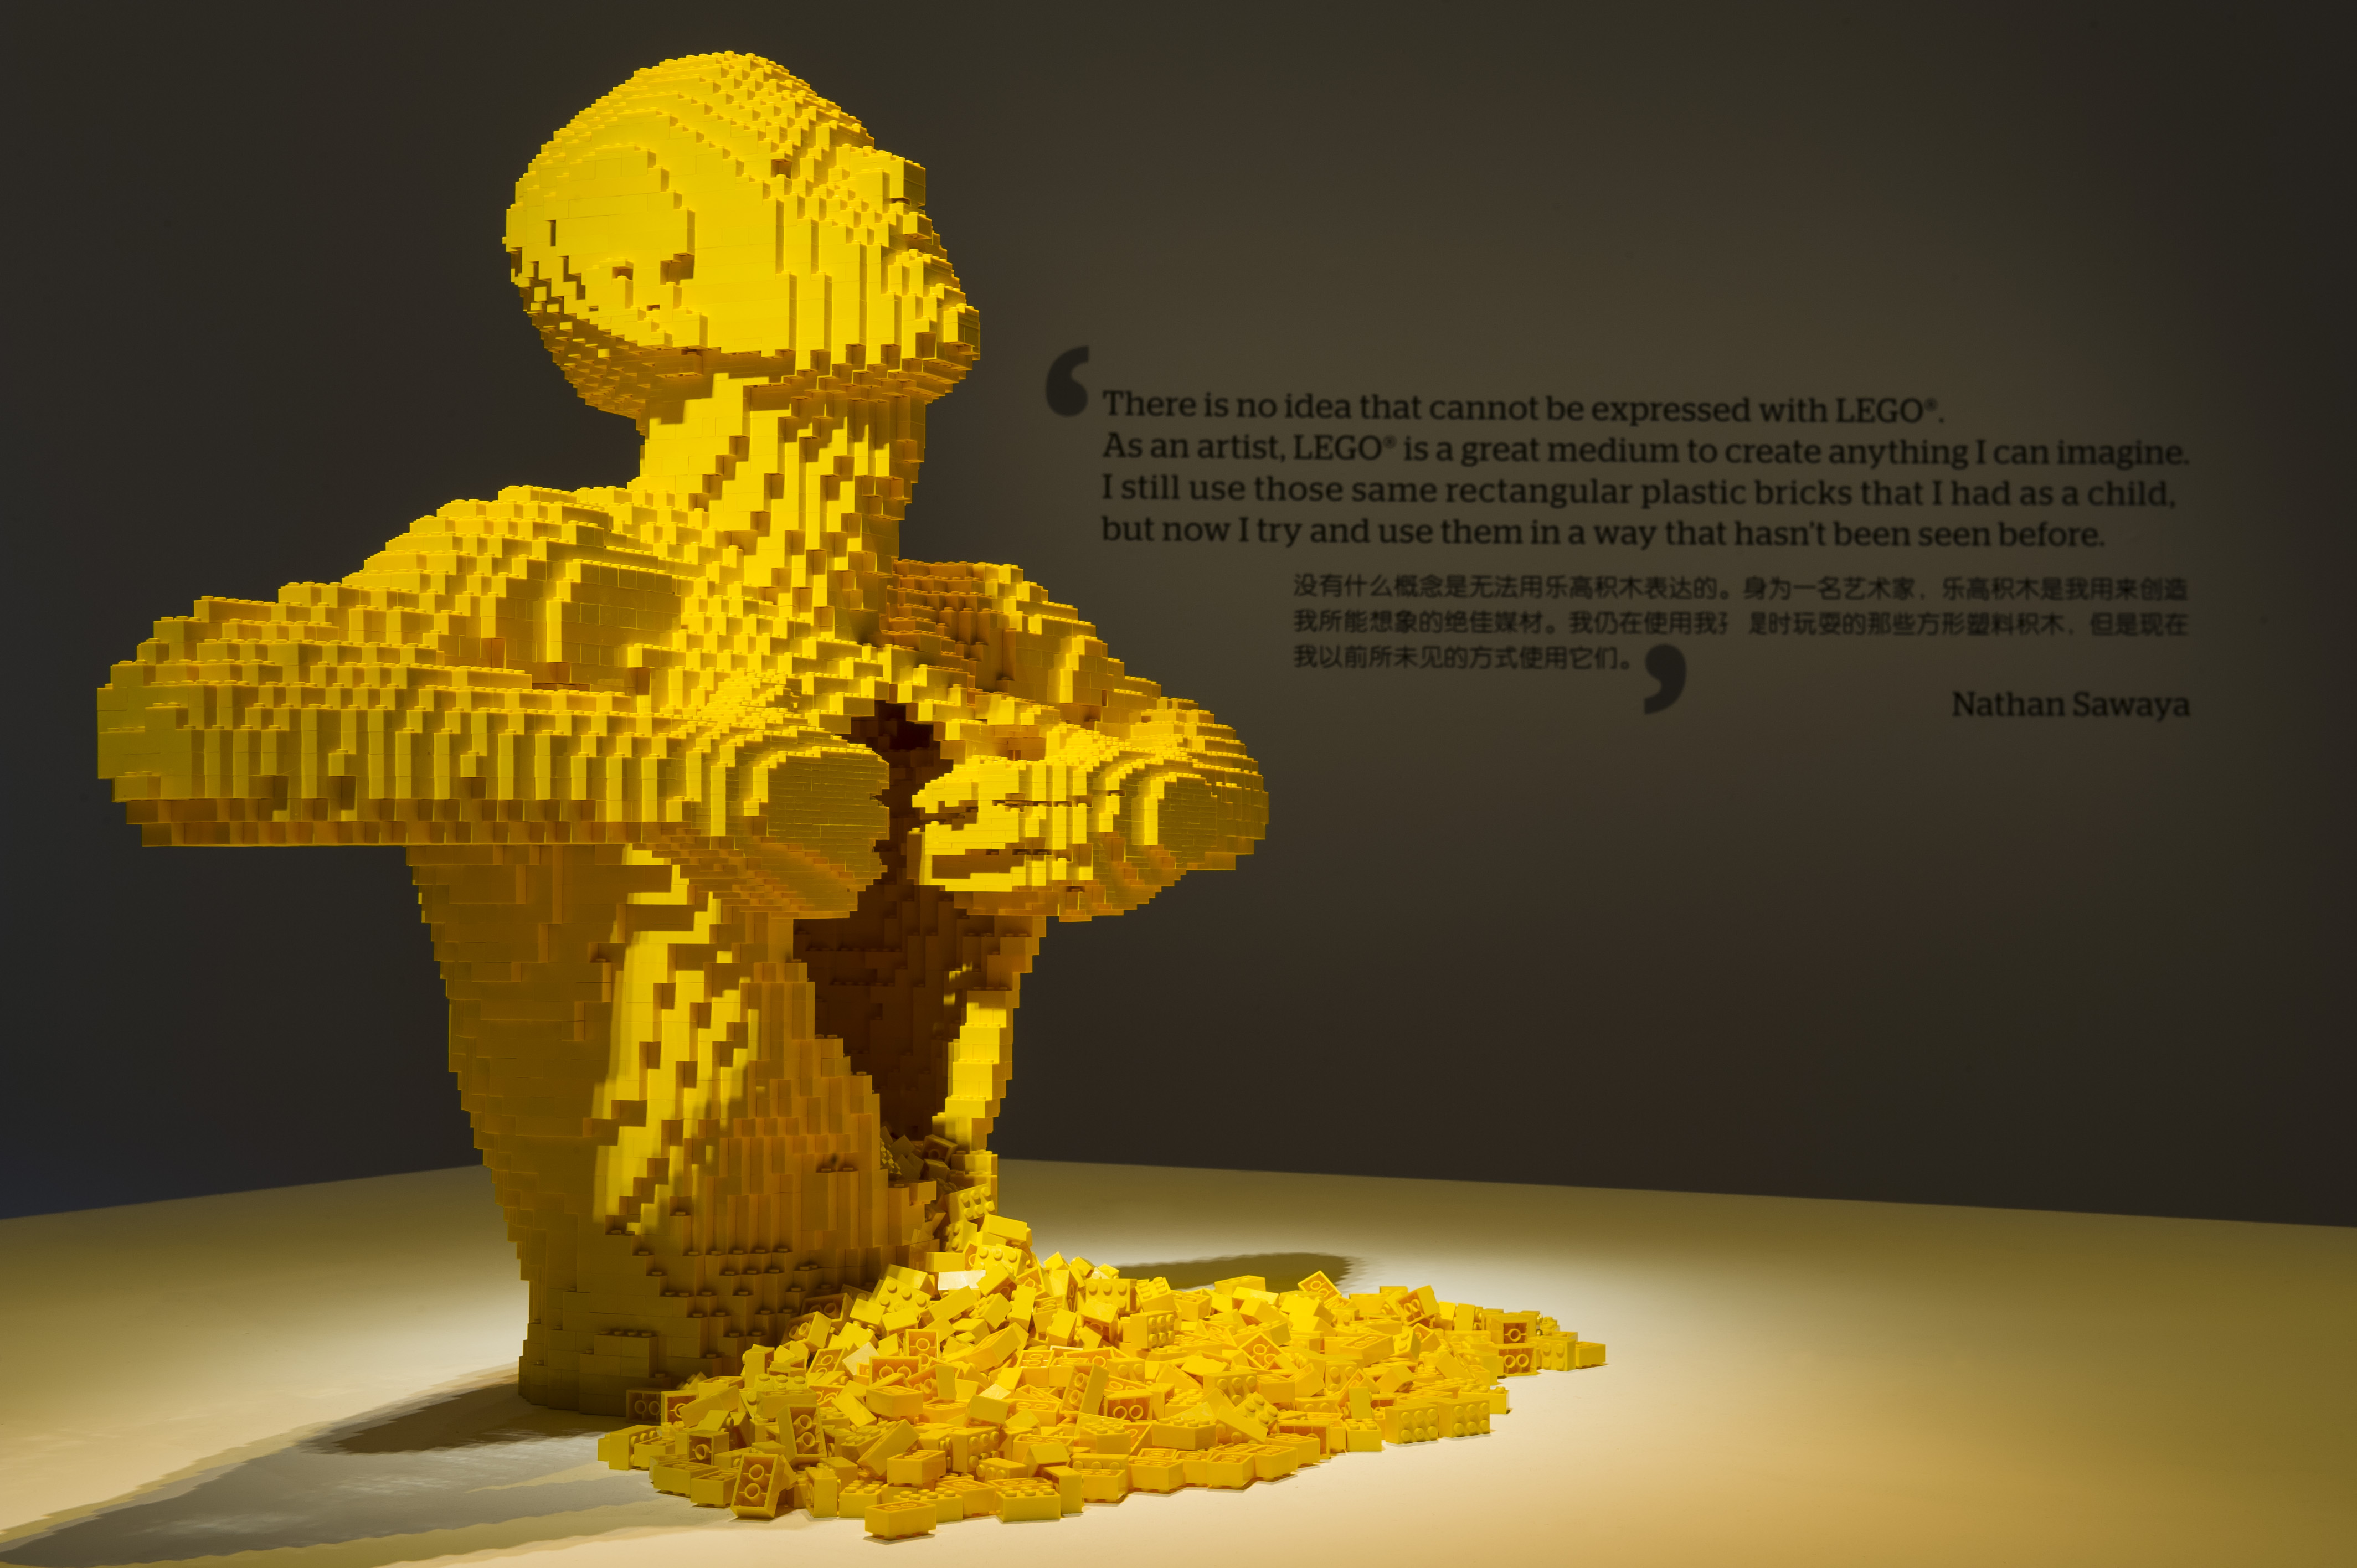 The Art of the Brick - Discovery Exhibit Image of Lego Sculpture